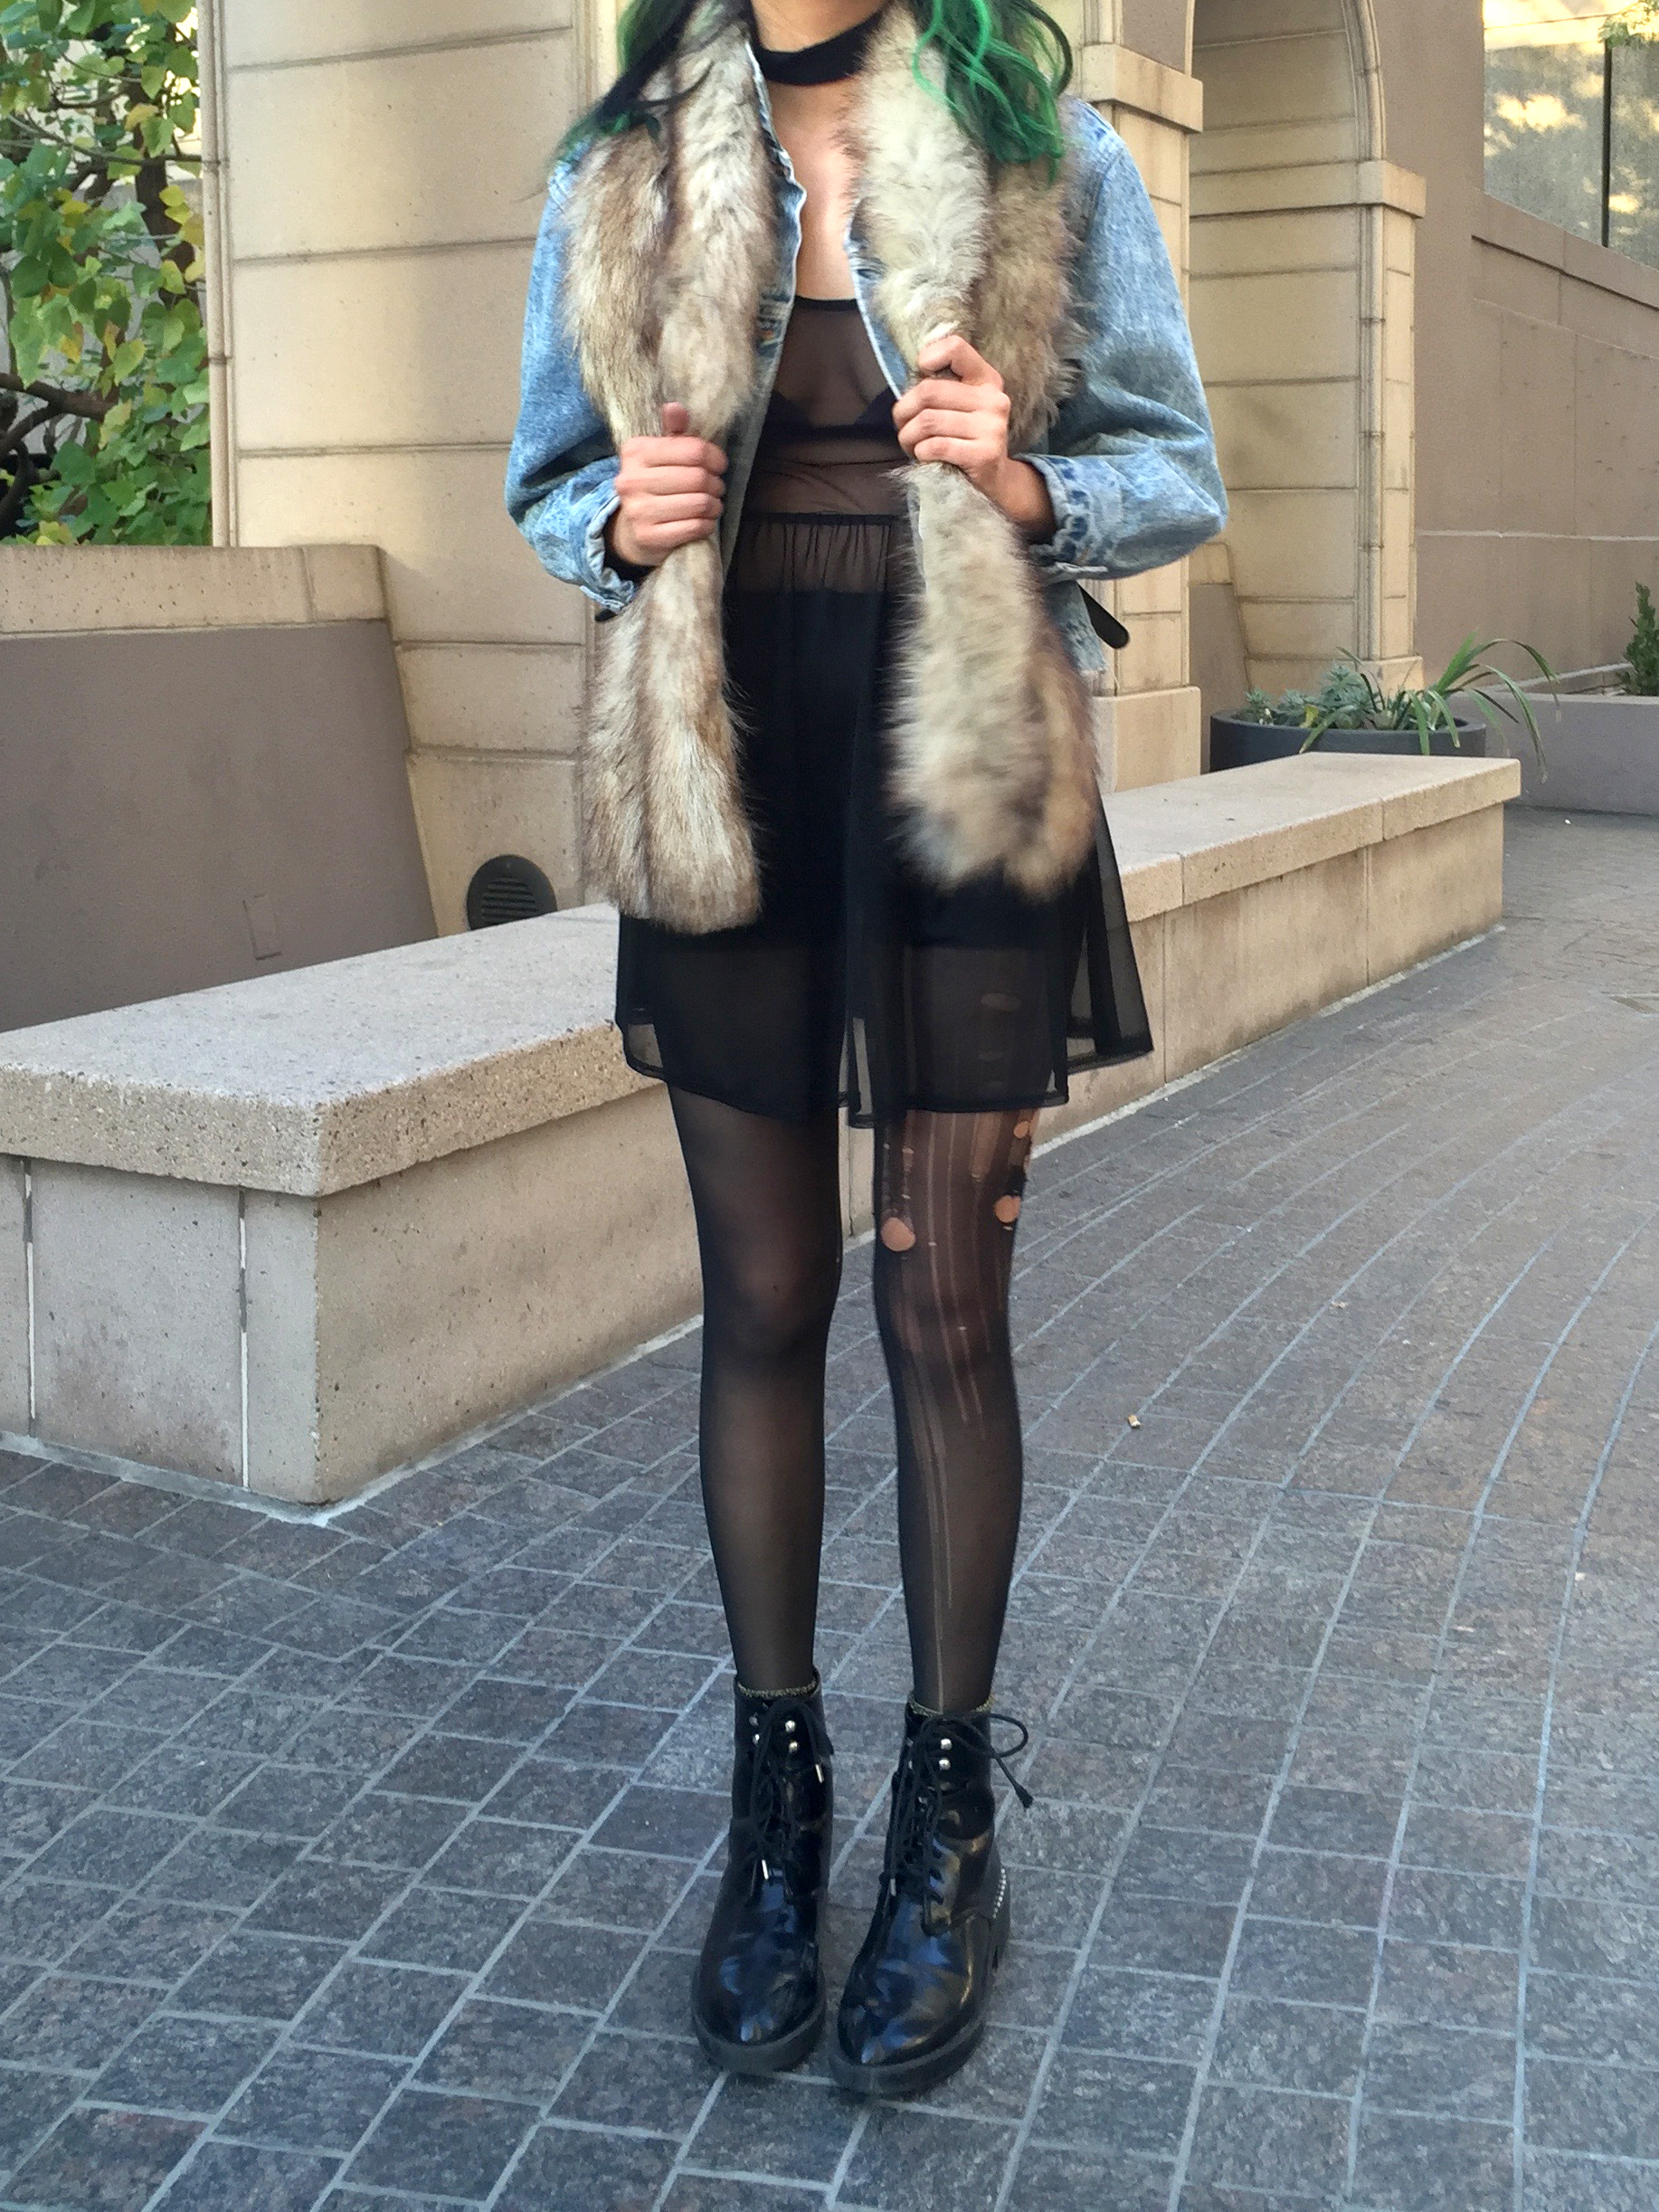 Gypsy Warrior sheer dress, boots, ripped tights, faux fur scarf, denim jacket, Karen Walker sunglasses, green hair